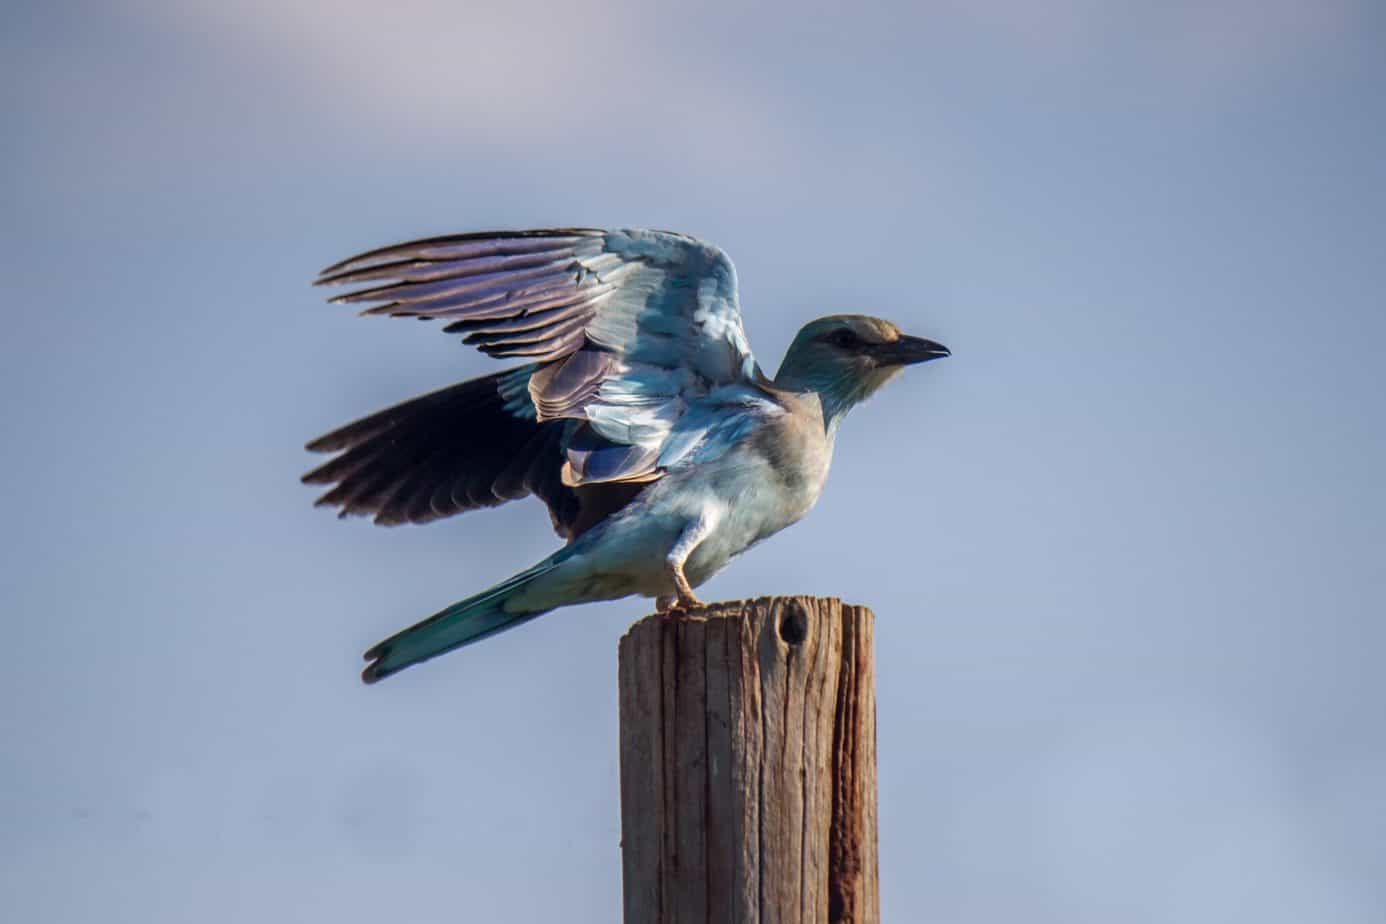 European Roller @ Ndumo Game Reserve. Photo: Håvard Rosenlund